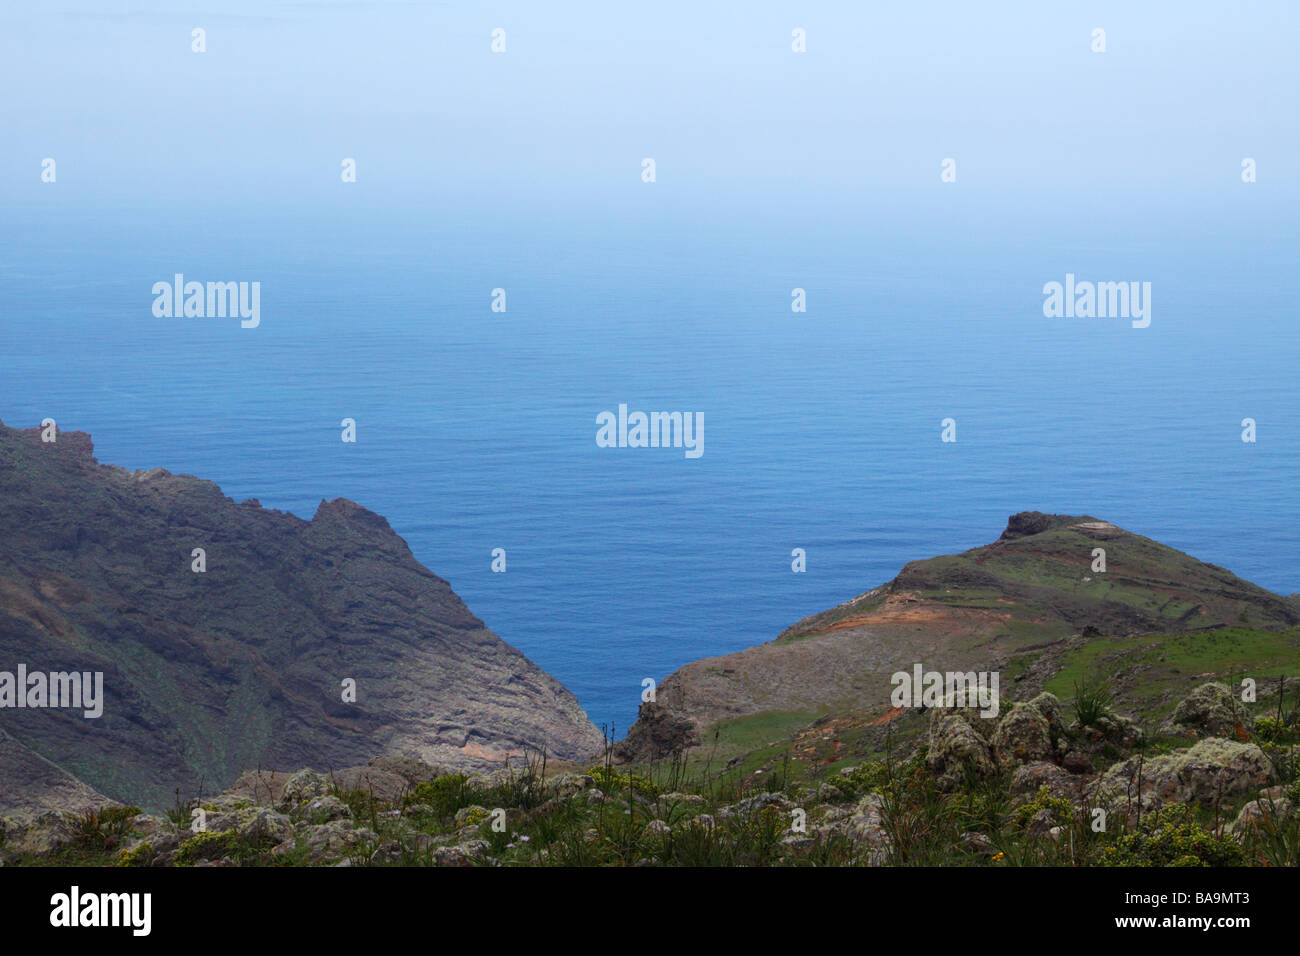 Sea view and canyons on La Gomera. This is Majona Natural Reserve. - Stock Image